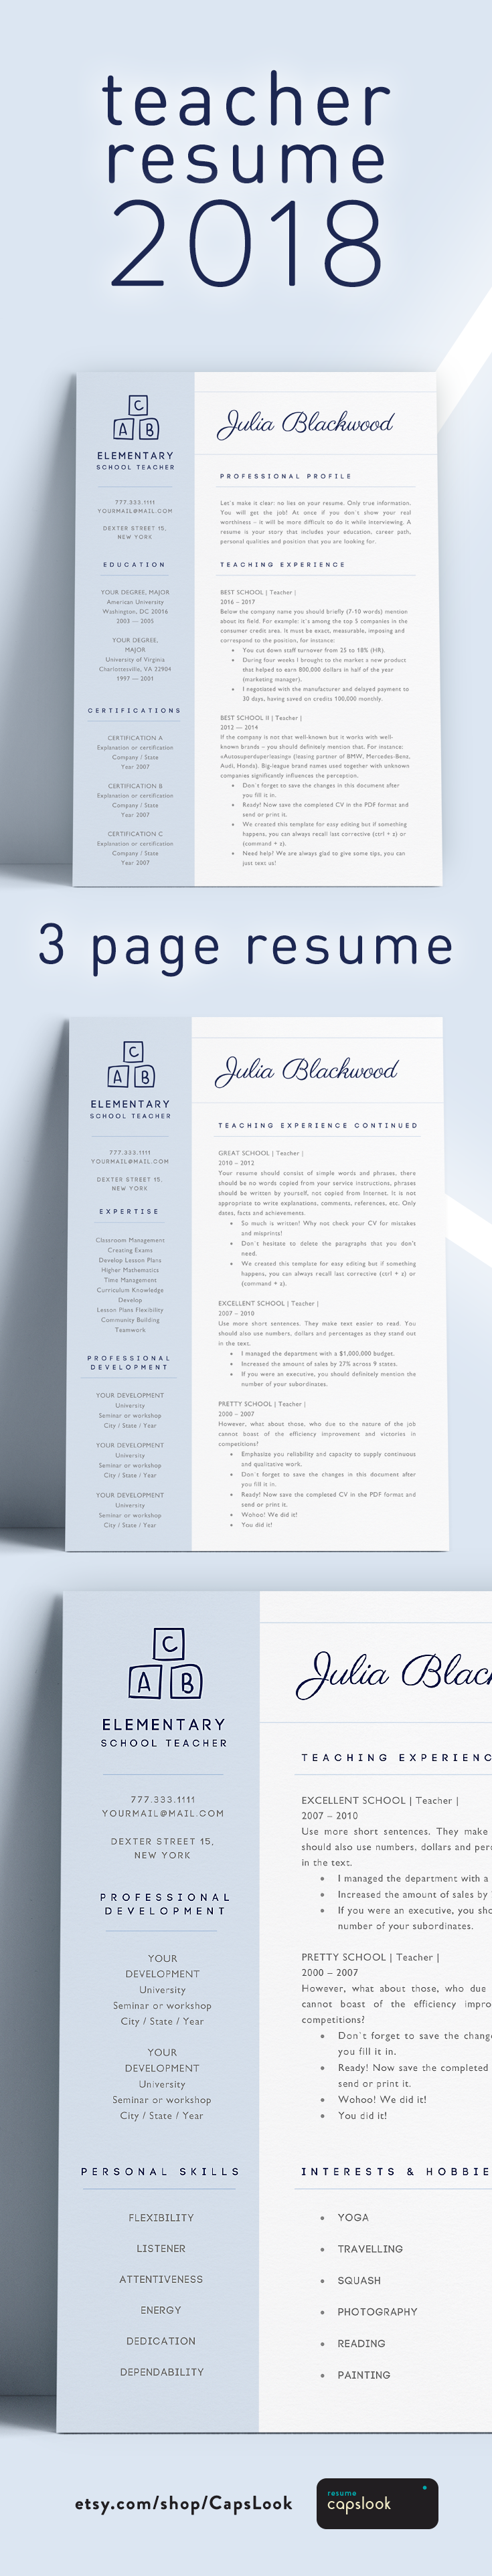 Microsoft Office Teacher Resume Template%0A Examples Of Resumes For Elementary Teachers Elementary Teacher Resume  Examples elementary teacher resumes sample teacher resume